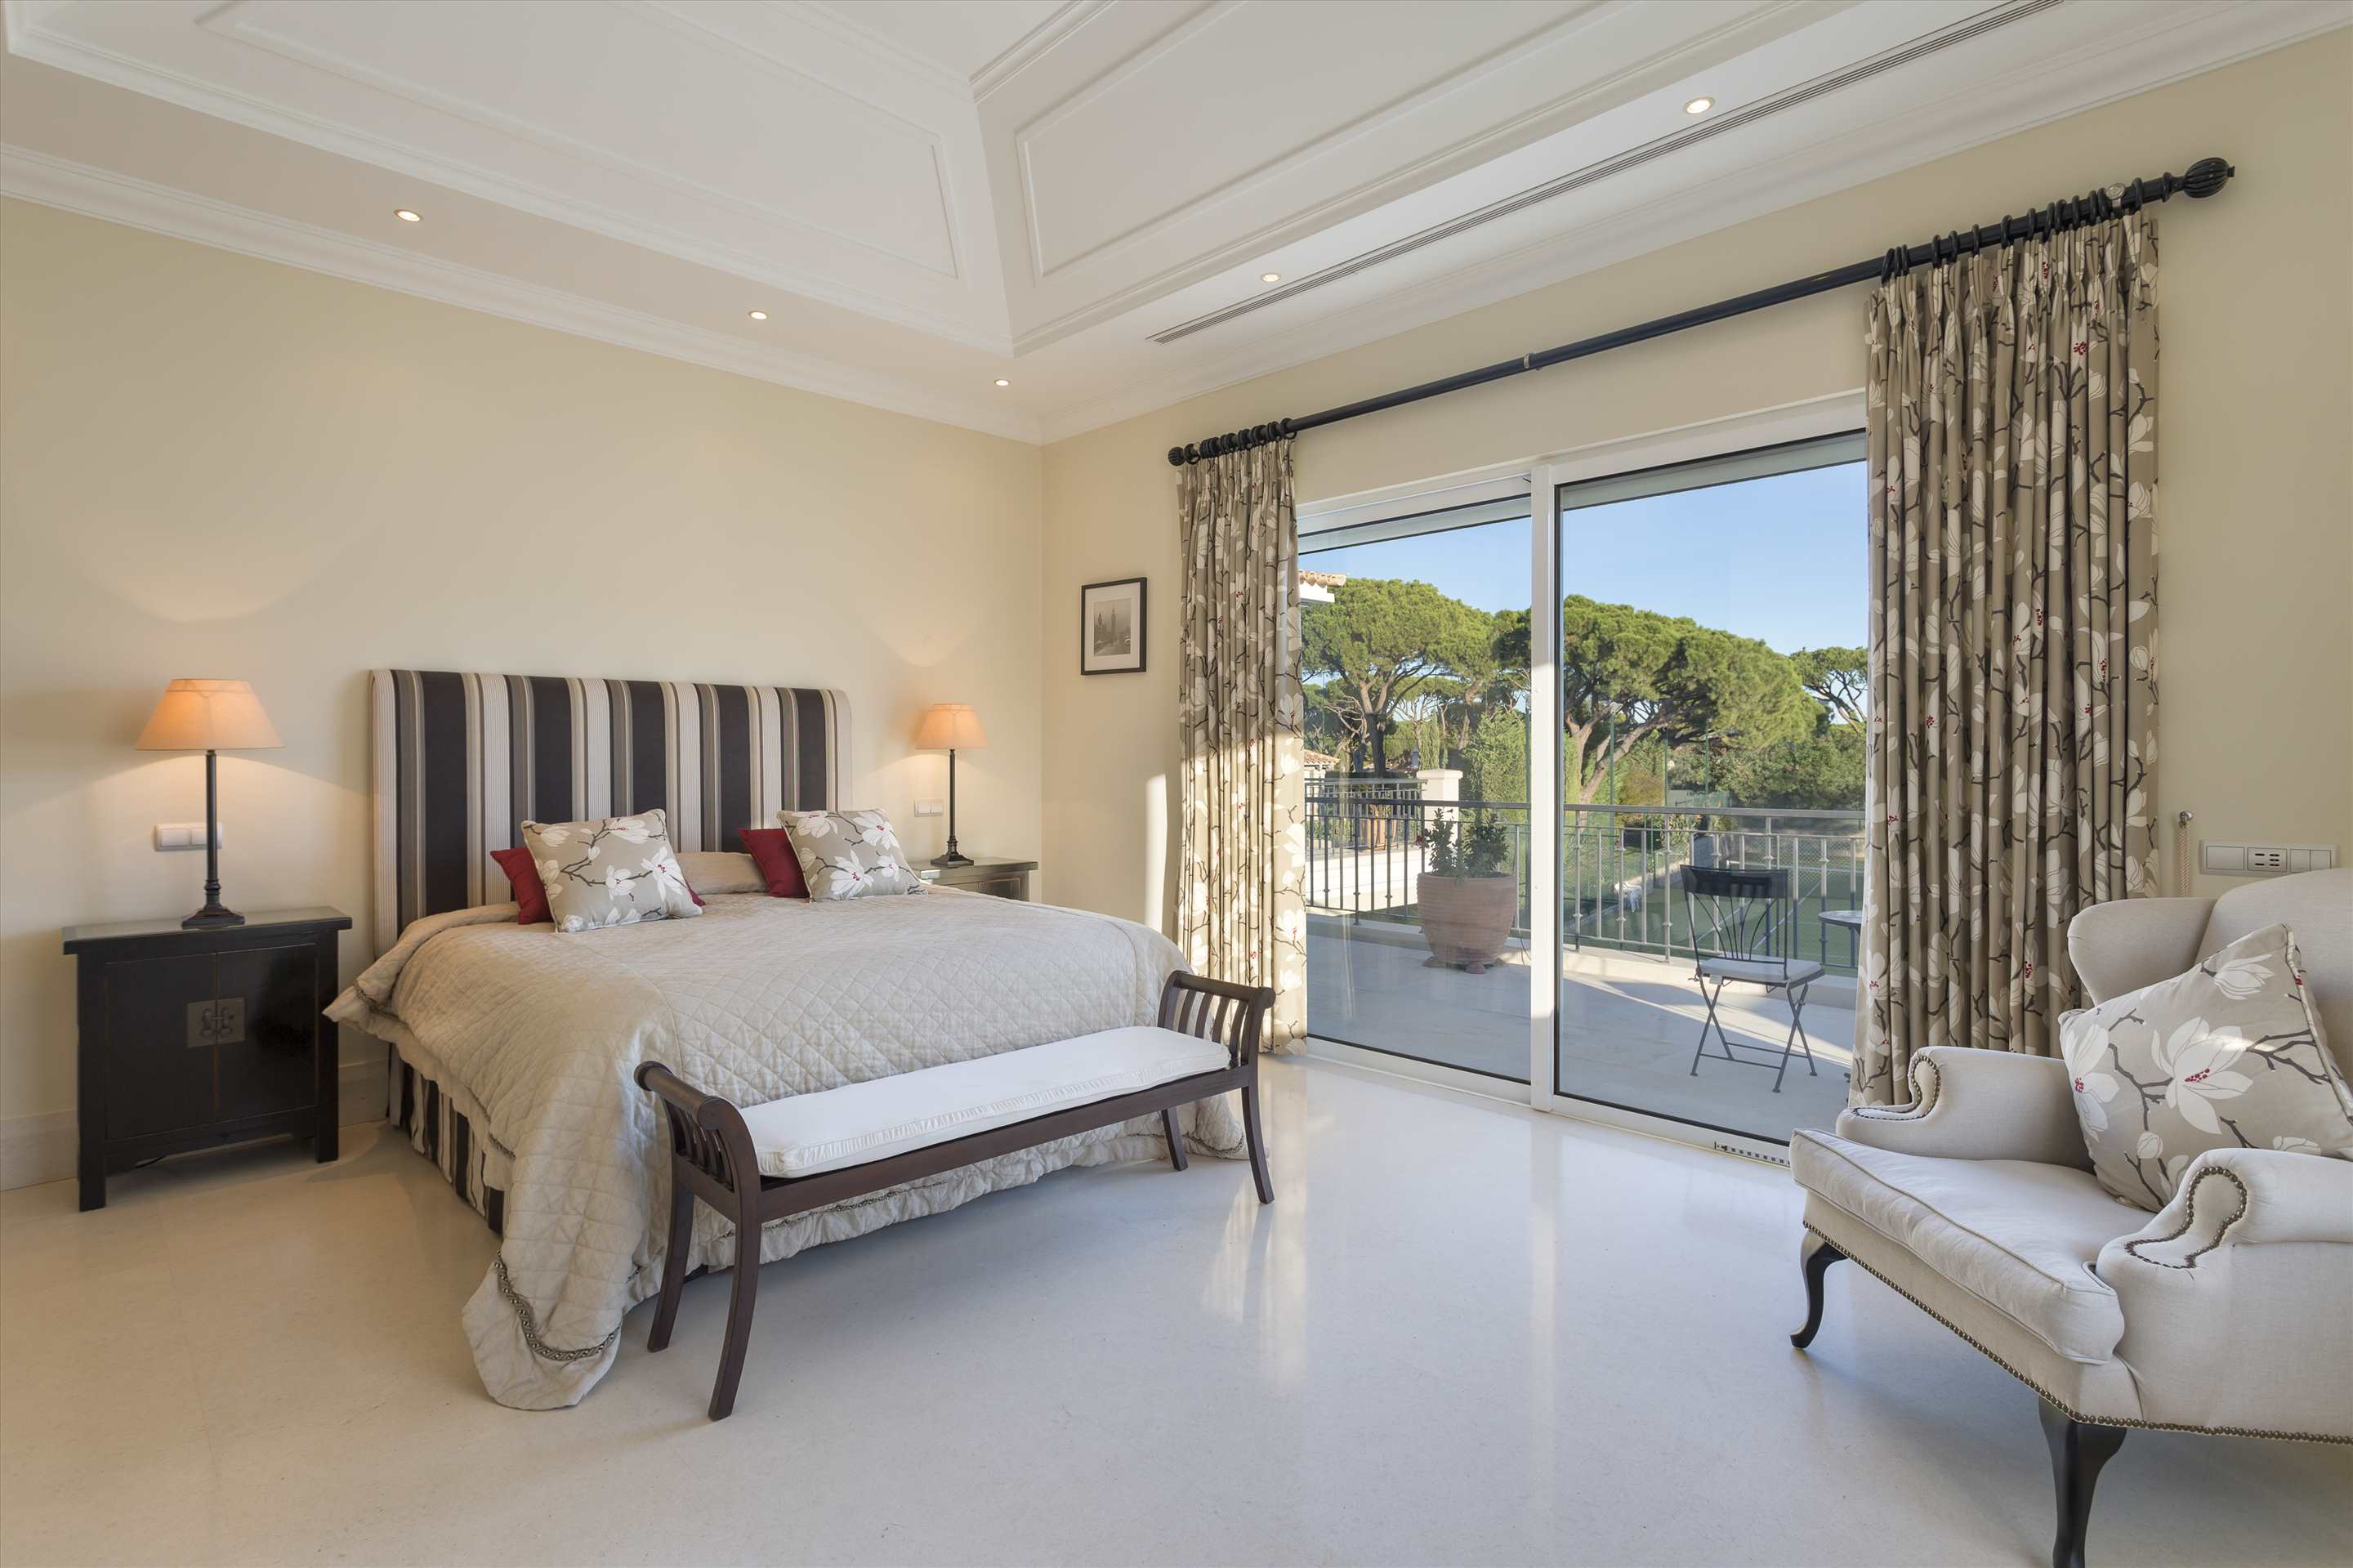 Villa Belissima, 5 bedroom villa in Vale do Lobo, Algarve Photo #24